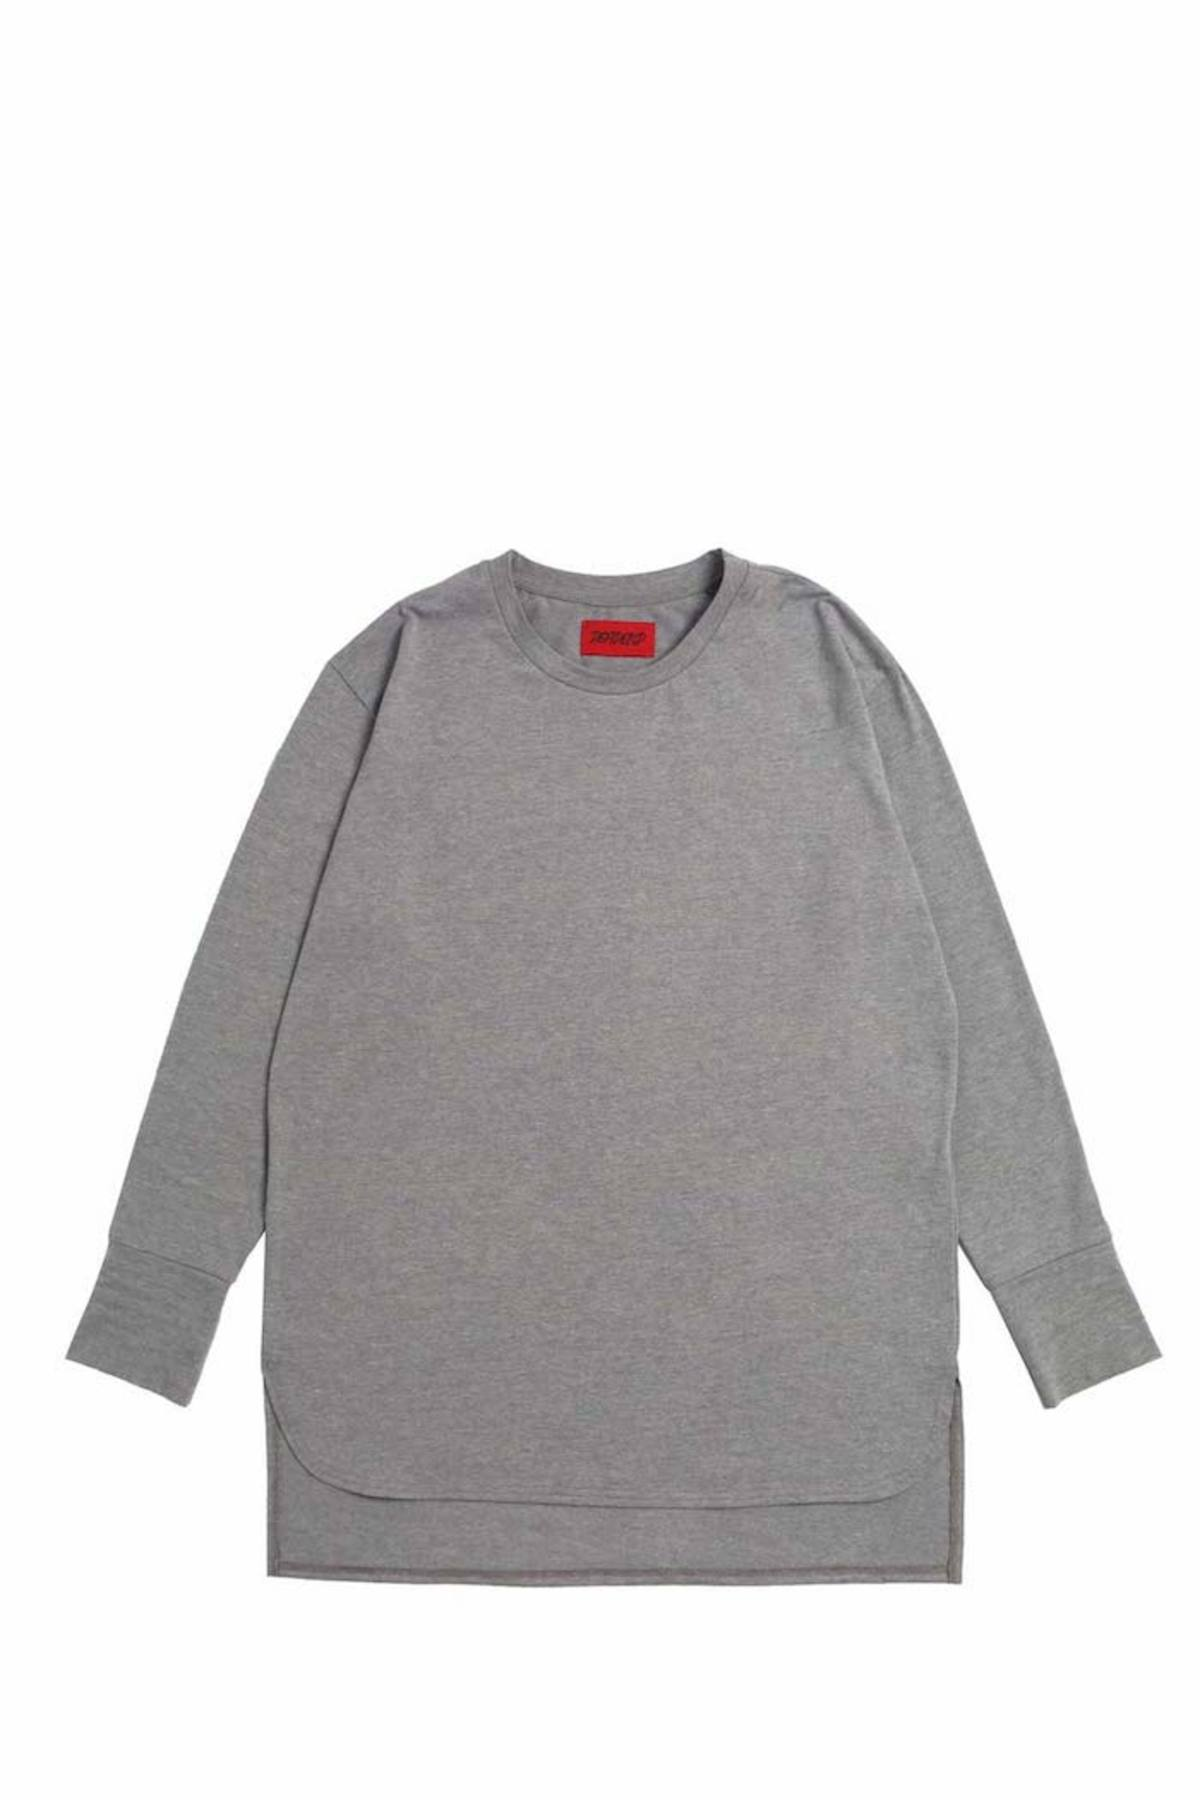 GREY SET IN RAGLAN SLEEVE V2